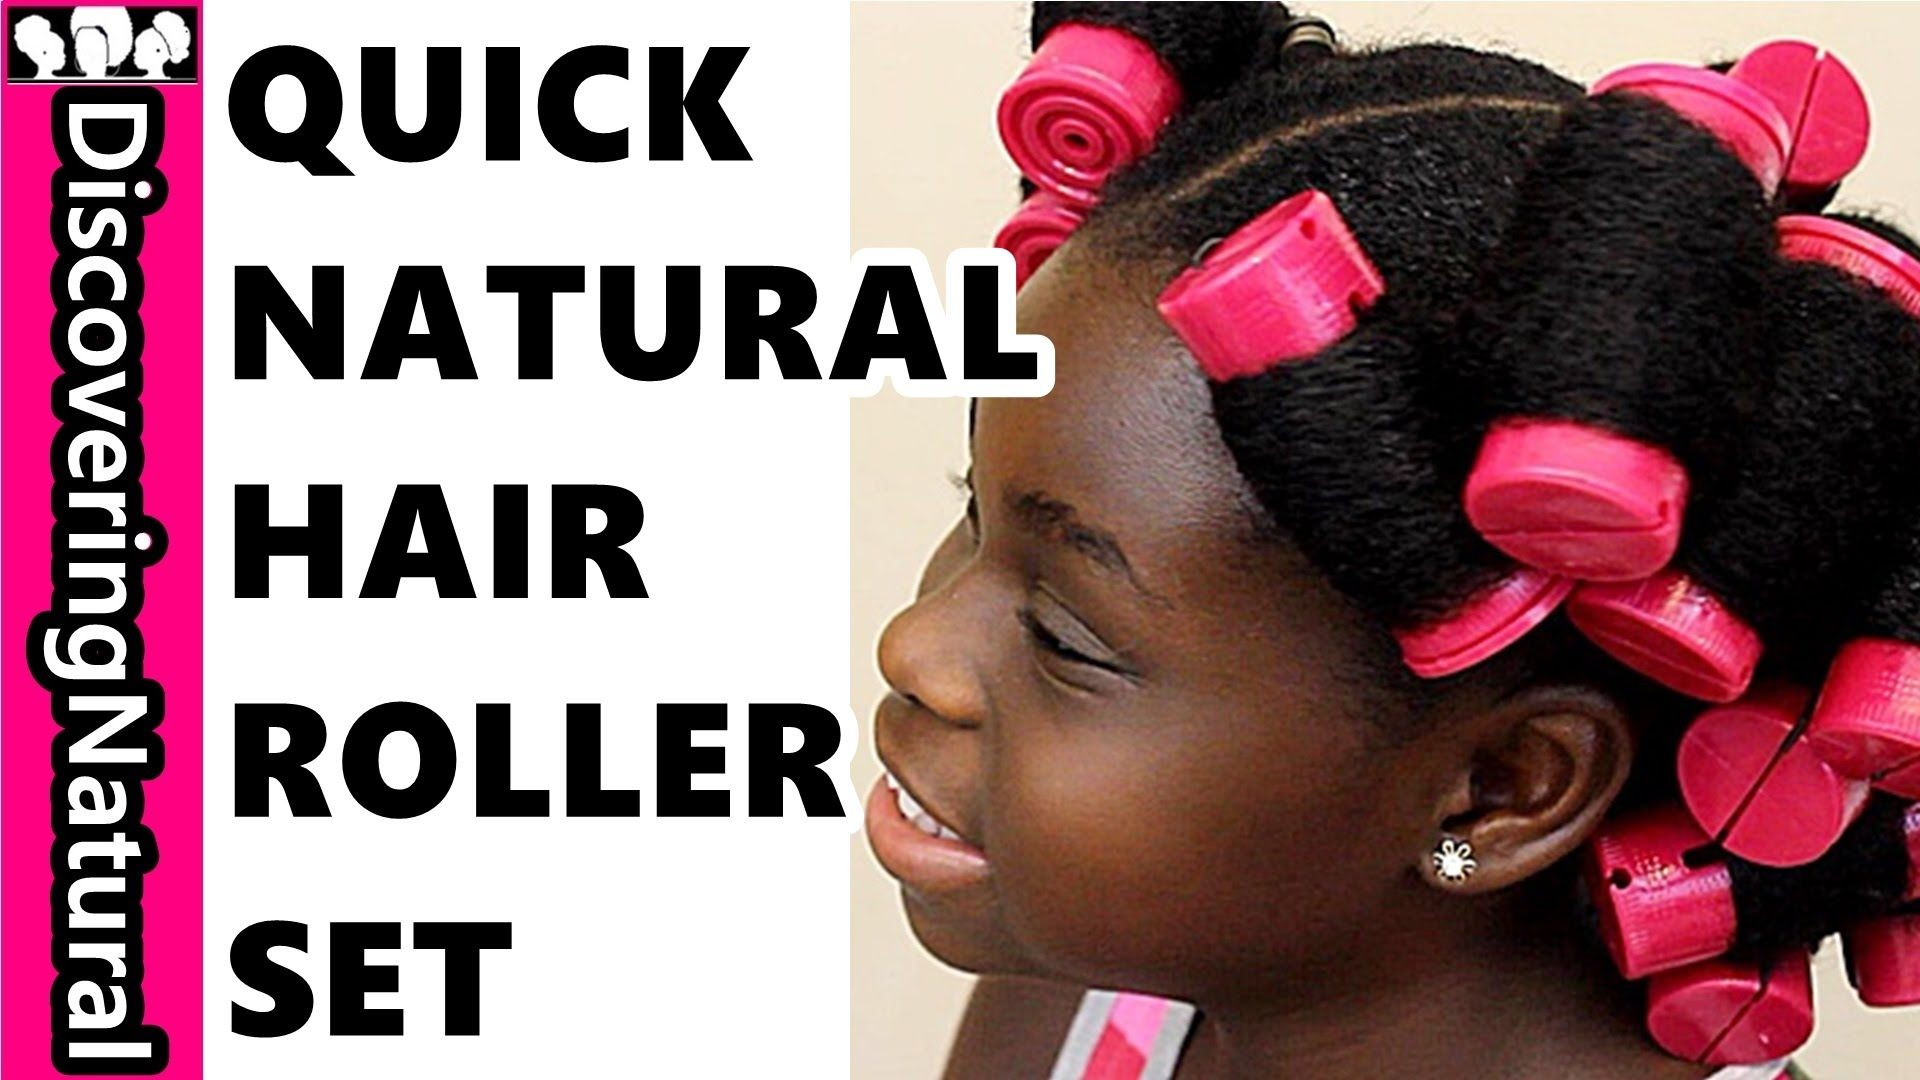 How to roller set thick natural hair c quickly using gel favorite